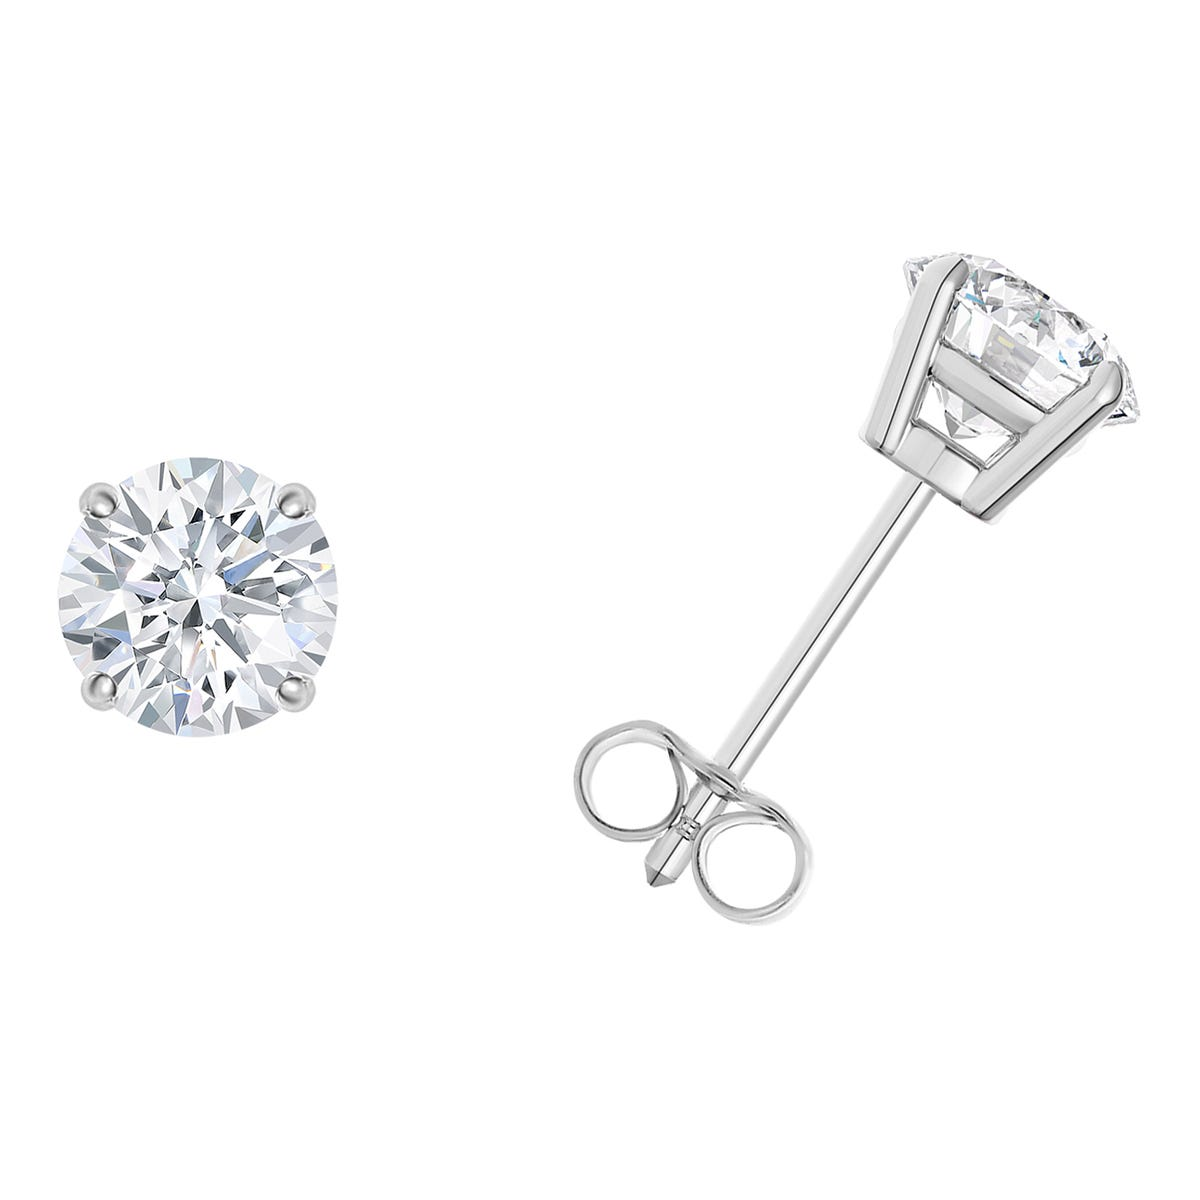 1/4 CTTW Round Diamond Solitaire Stud 4-prong Earrings in 10K White Gold (I-I2) IGI Certified